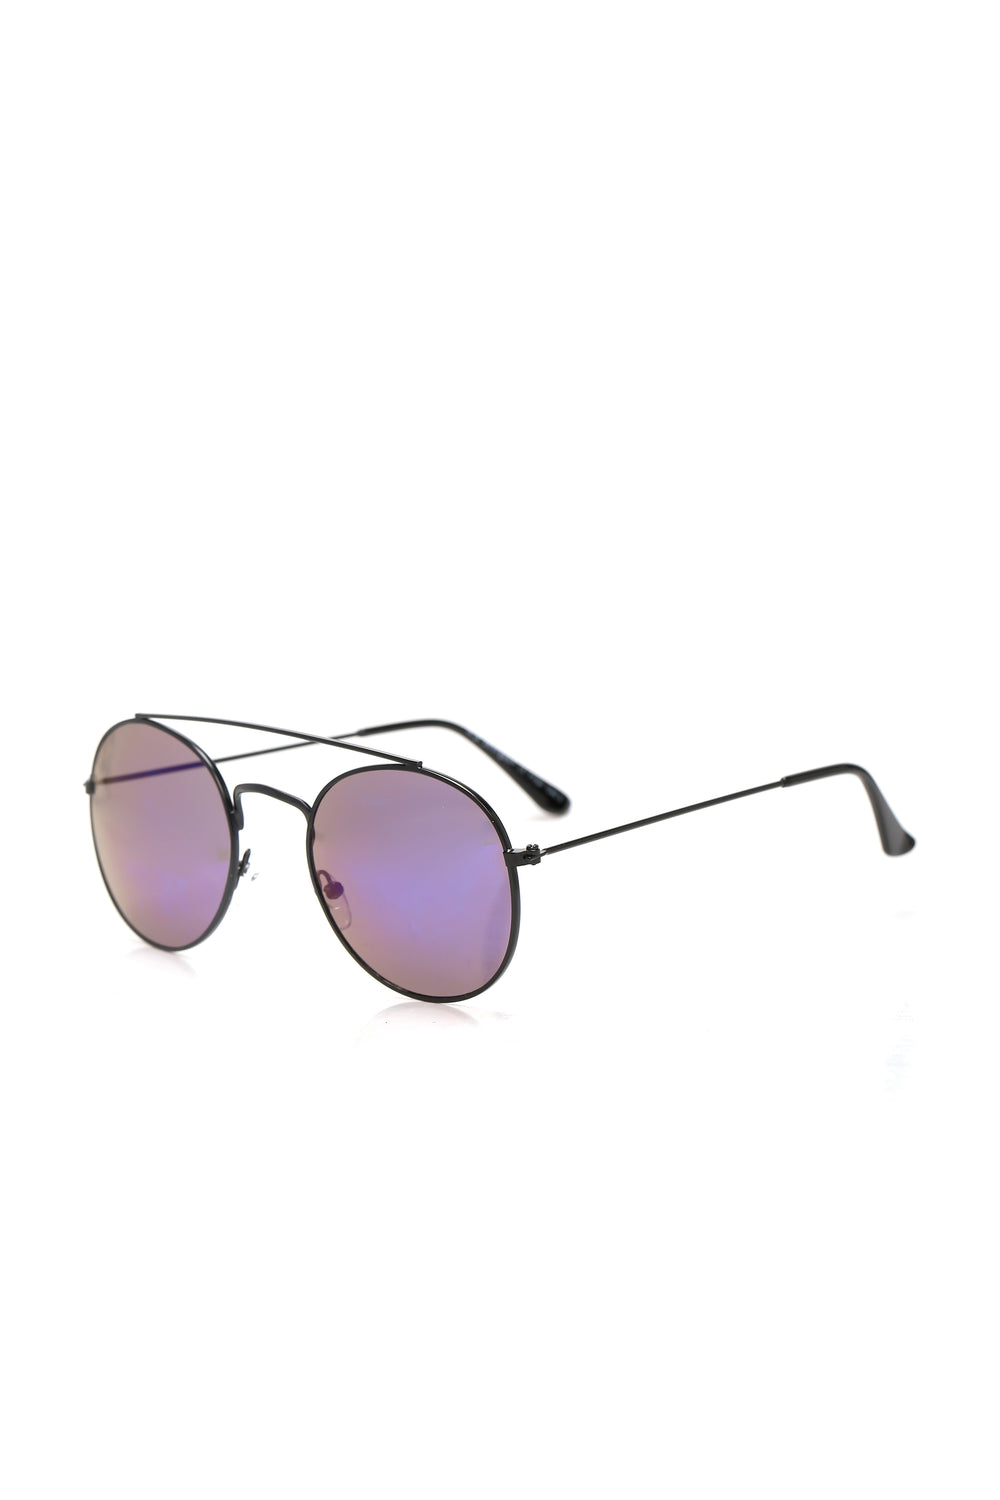 Common Love Sunglasses - Black